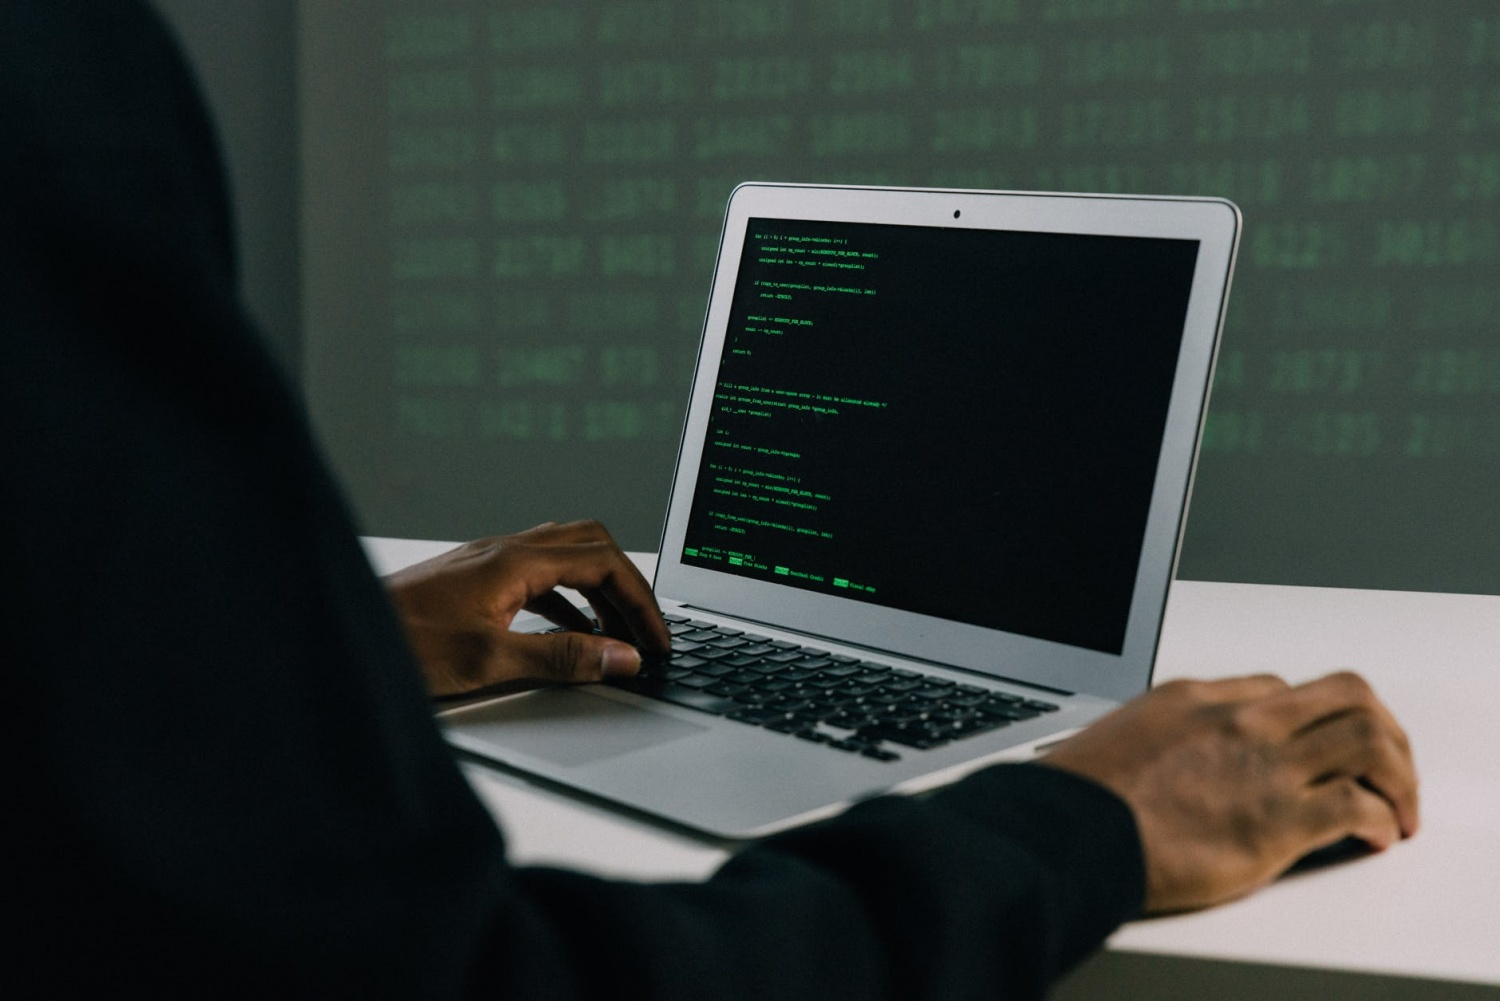 What One Should Look For in a Cybersecurity Platform